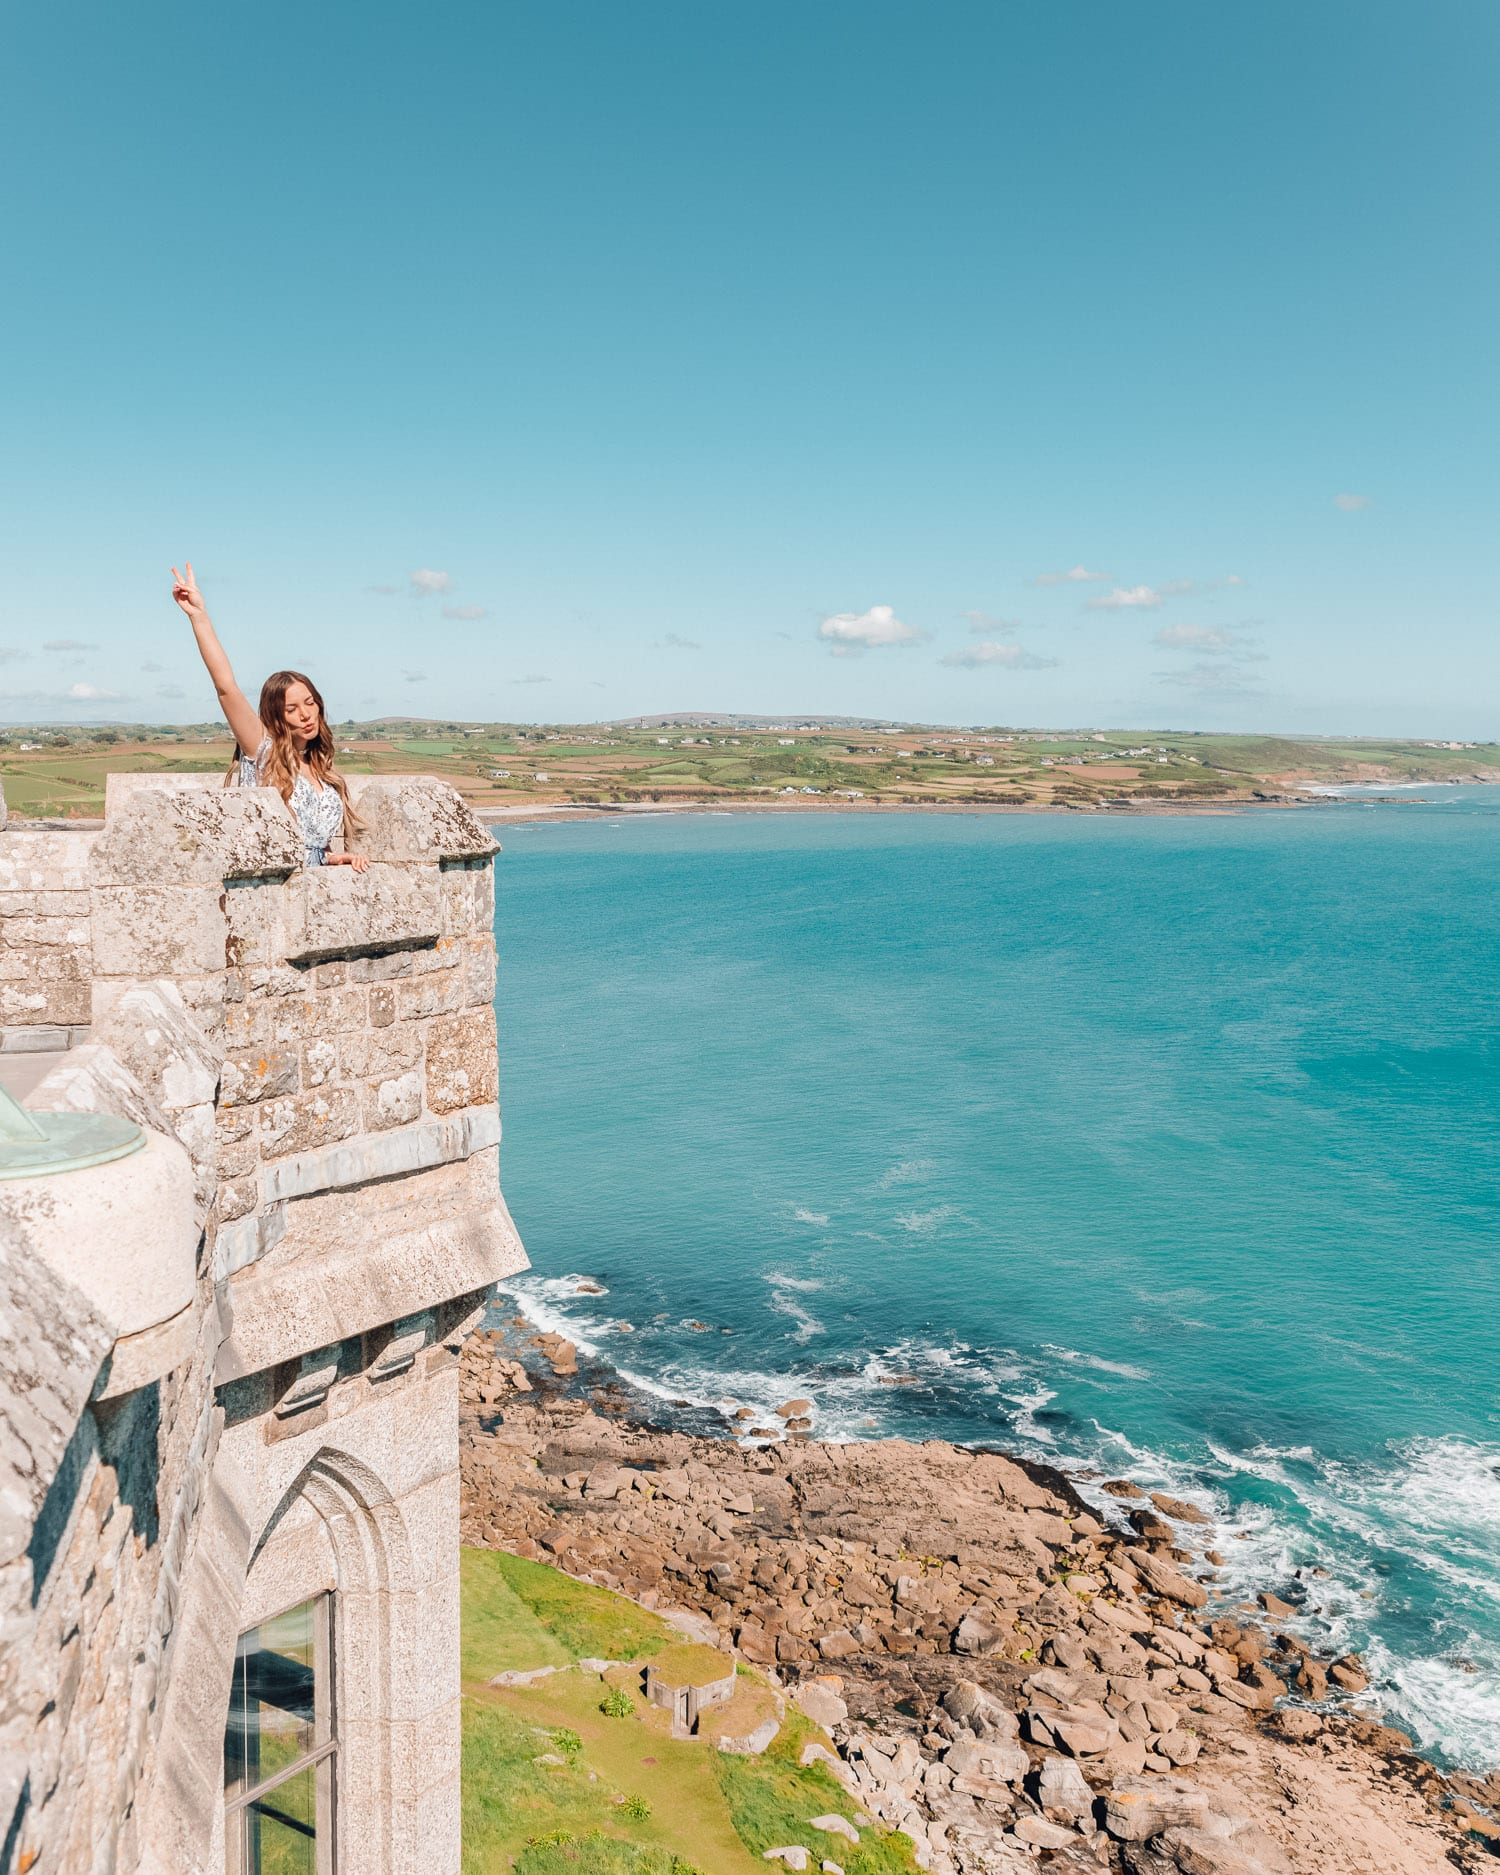 St. Michael's Mount  Castle in Cornwall, England, UK